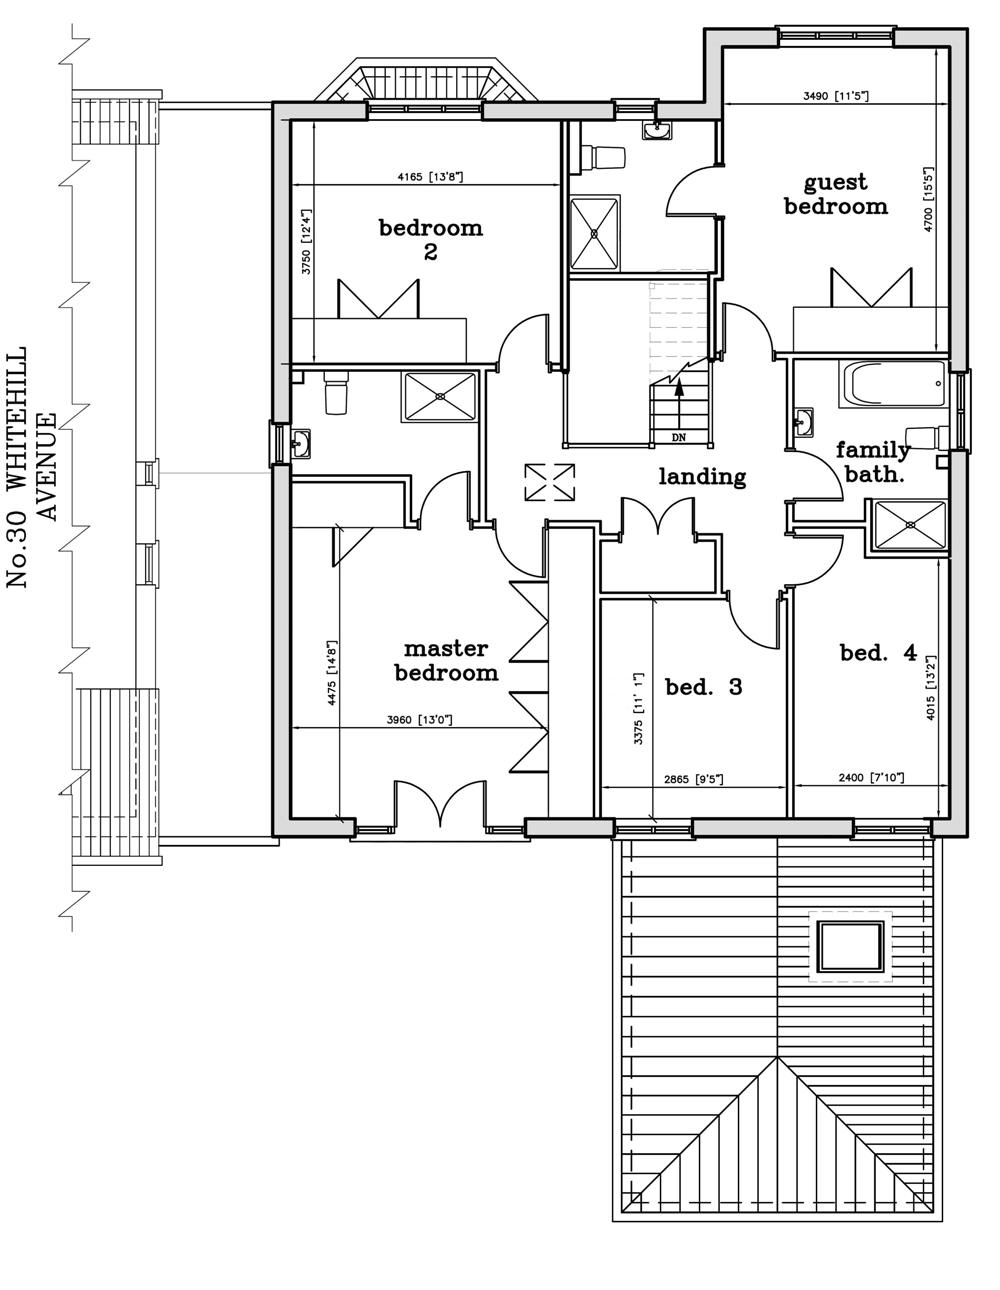 Floor Layout Plan Mead Estates Ltd 32 Whitehill Avenue Luton Floor Plans